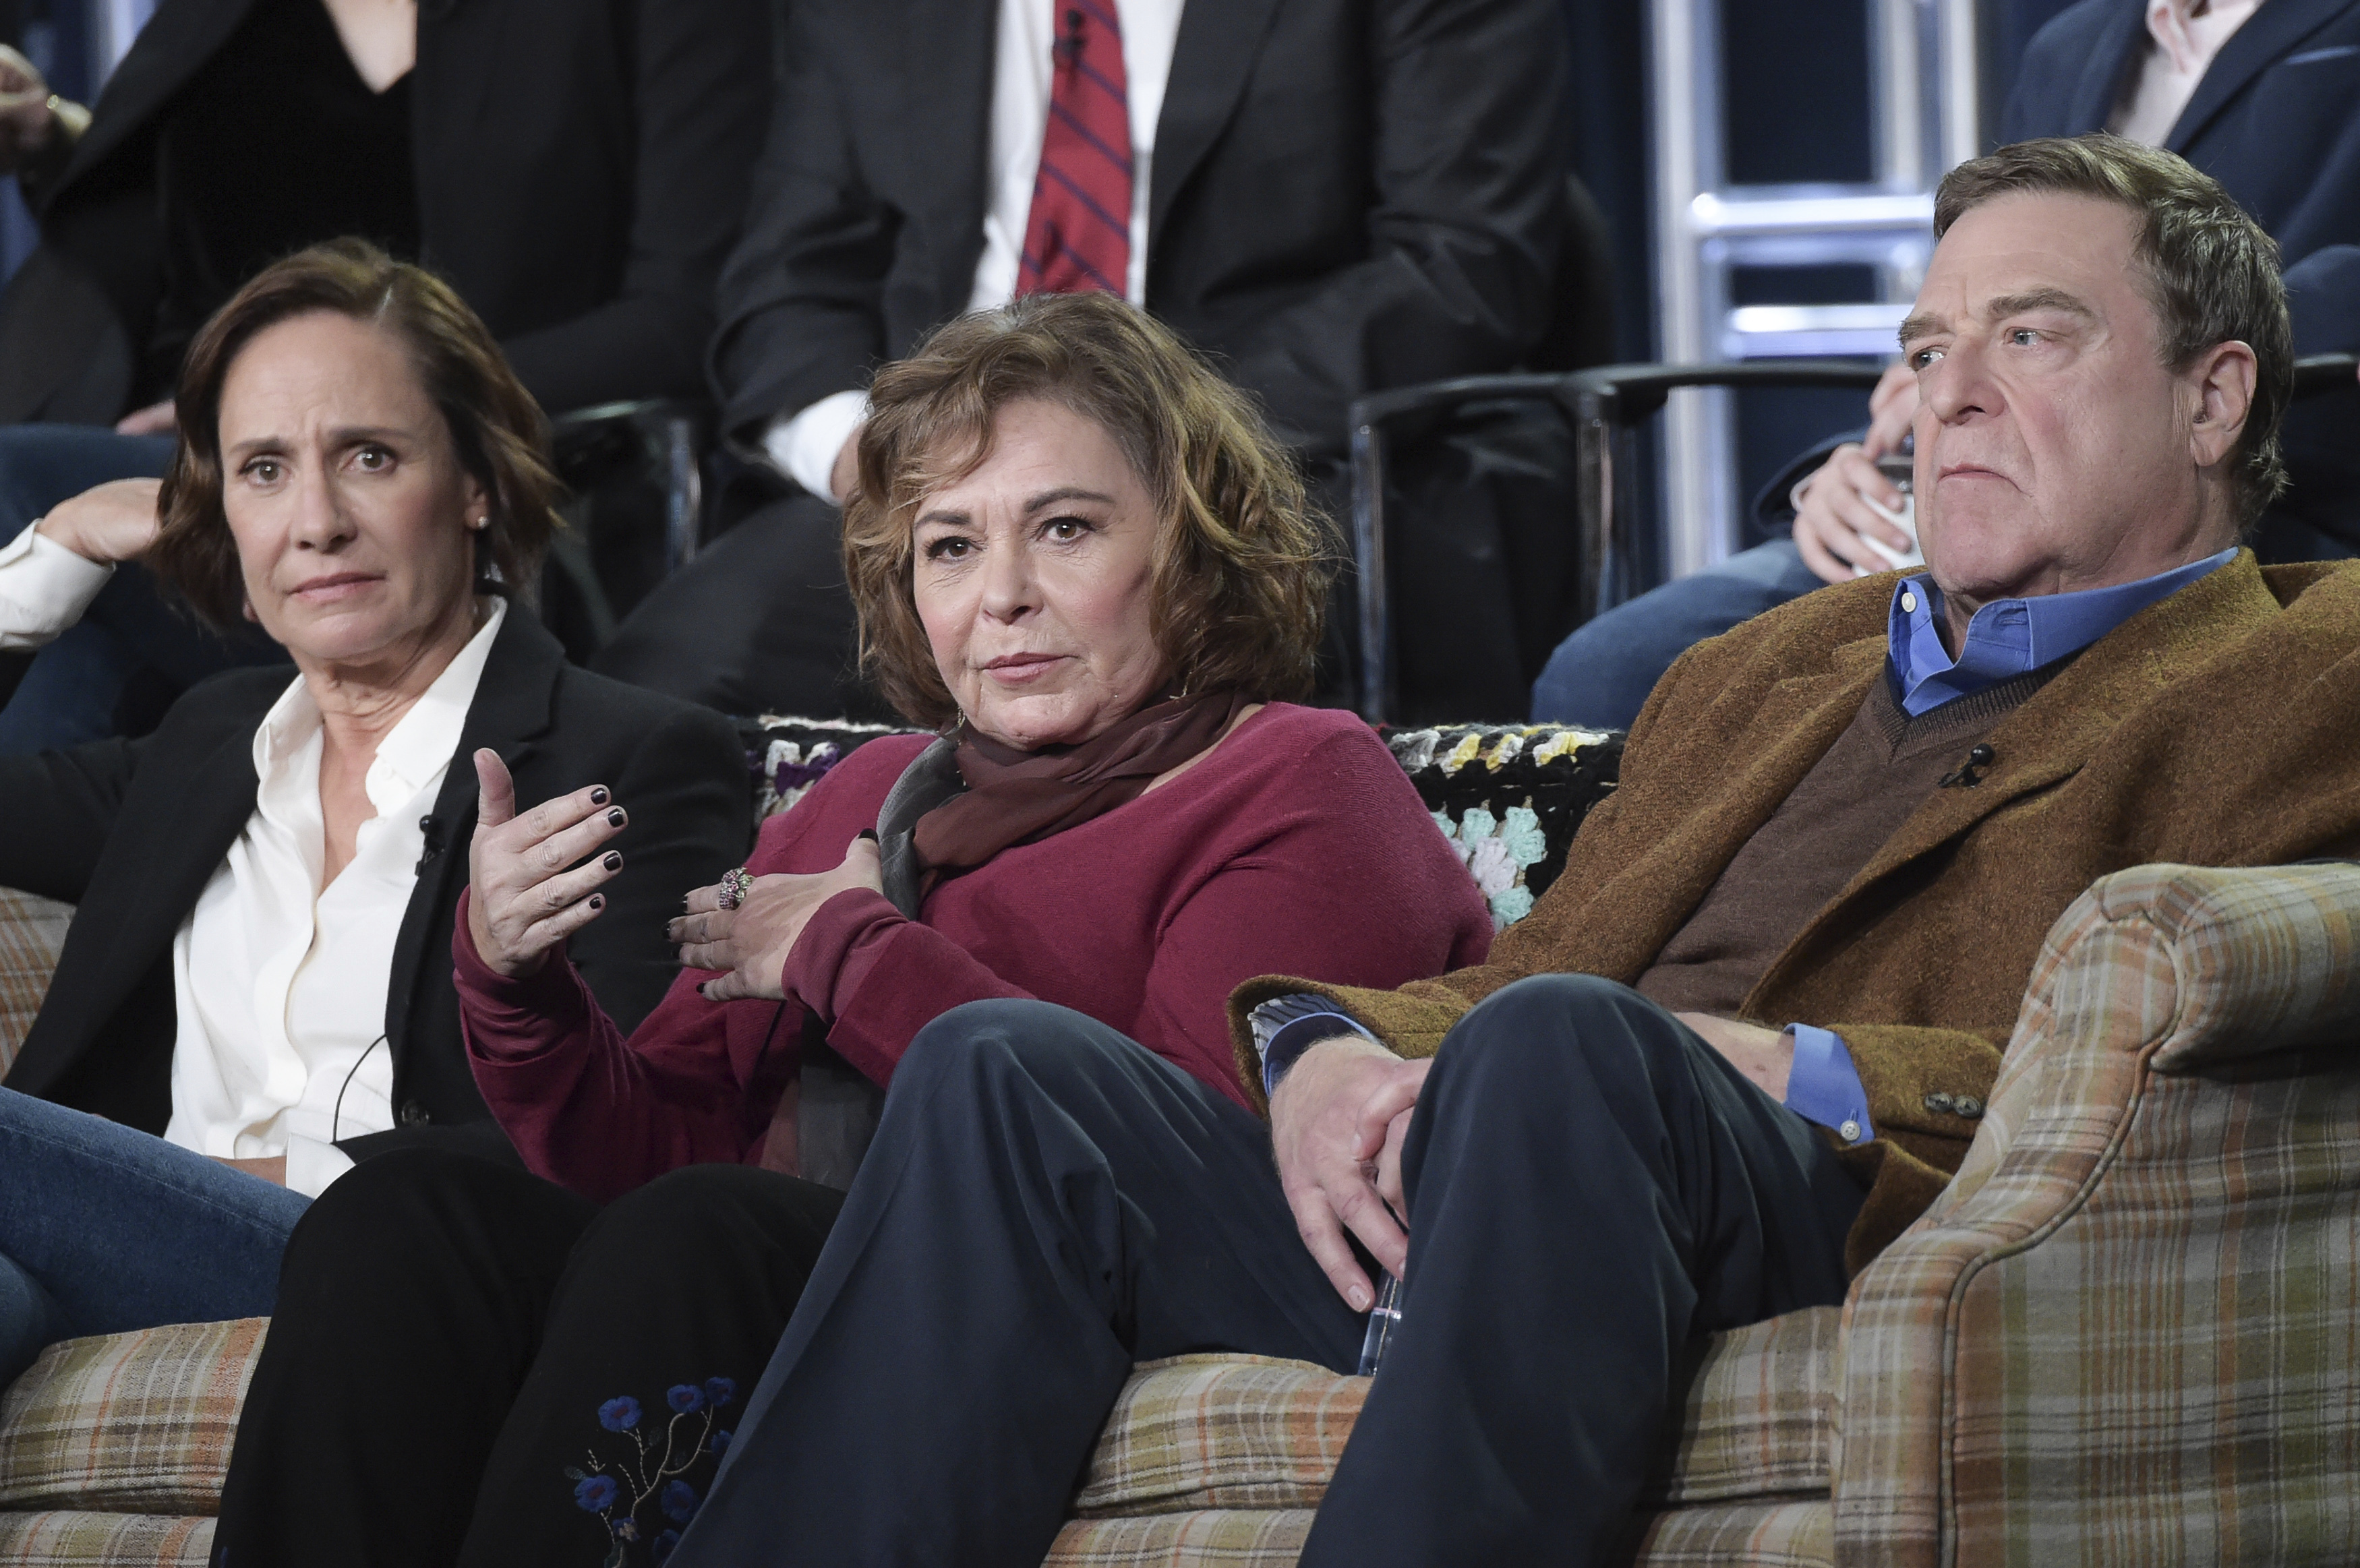 "FILE - In this Jan. 8, 2018 file photo, Laurie Metcalf, from left, Roseanne Barr and John Goodman participate in the ""Roseanne"" panel during the Disney/ABC Television Critics Association Winter Press Tour in Pasadena, Calif. The unprecedented sudden cancellation of TV's top comedy has left a wave of unemployment and uncertainty in its wake. Barr's racist tweet and the almost immediate axing of her show put hundreds of people out of work. (Photo by Richard Shotwell/Invision/AP, File)"